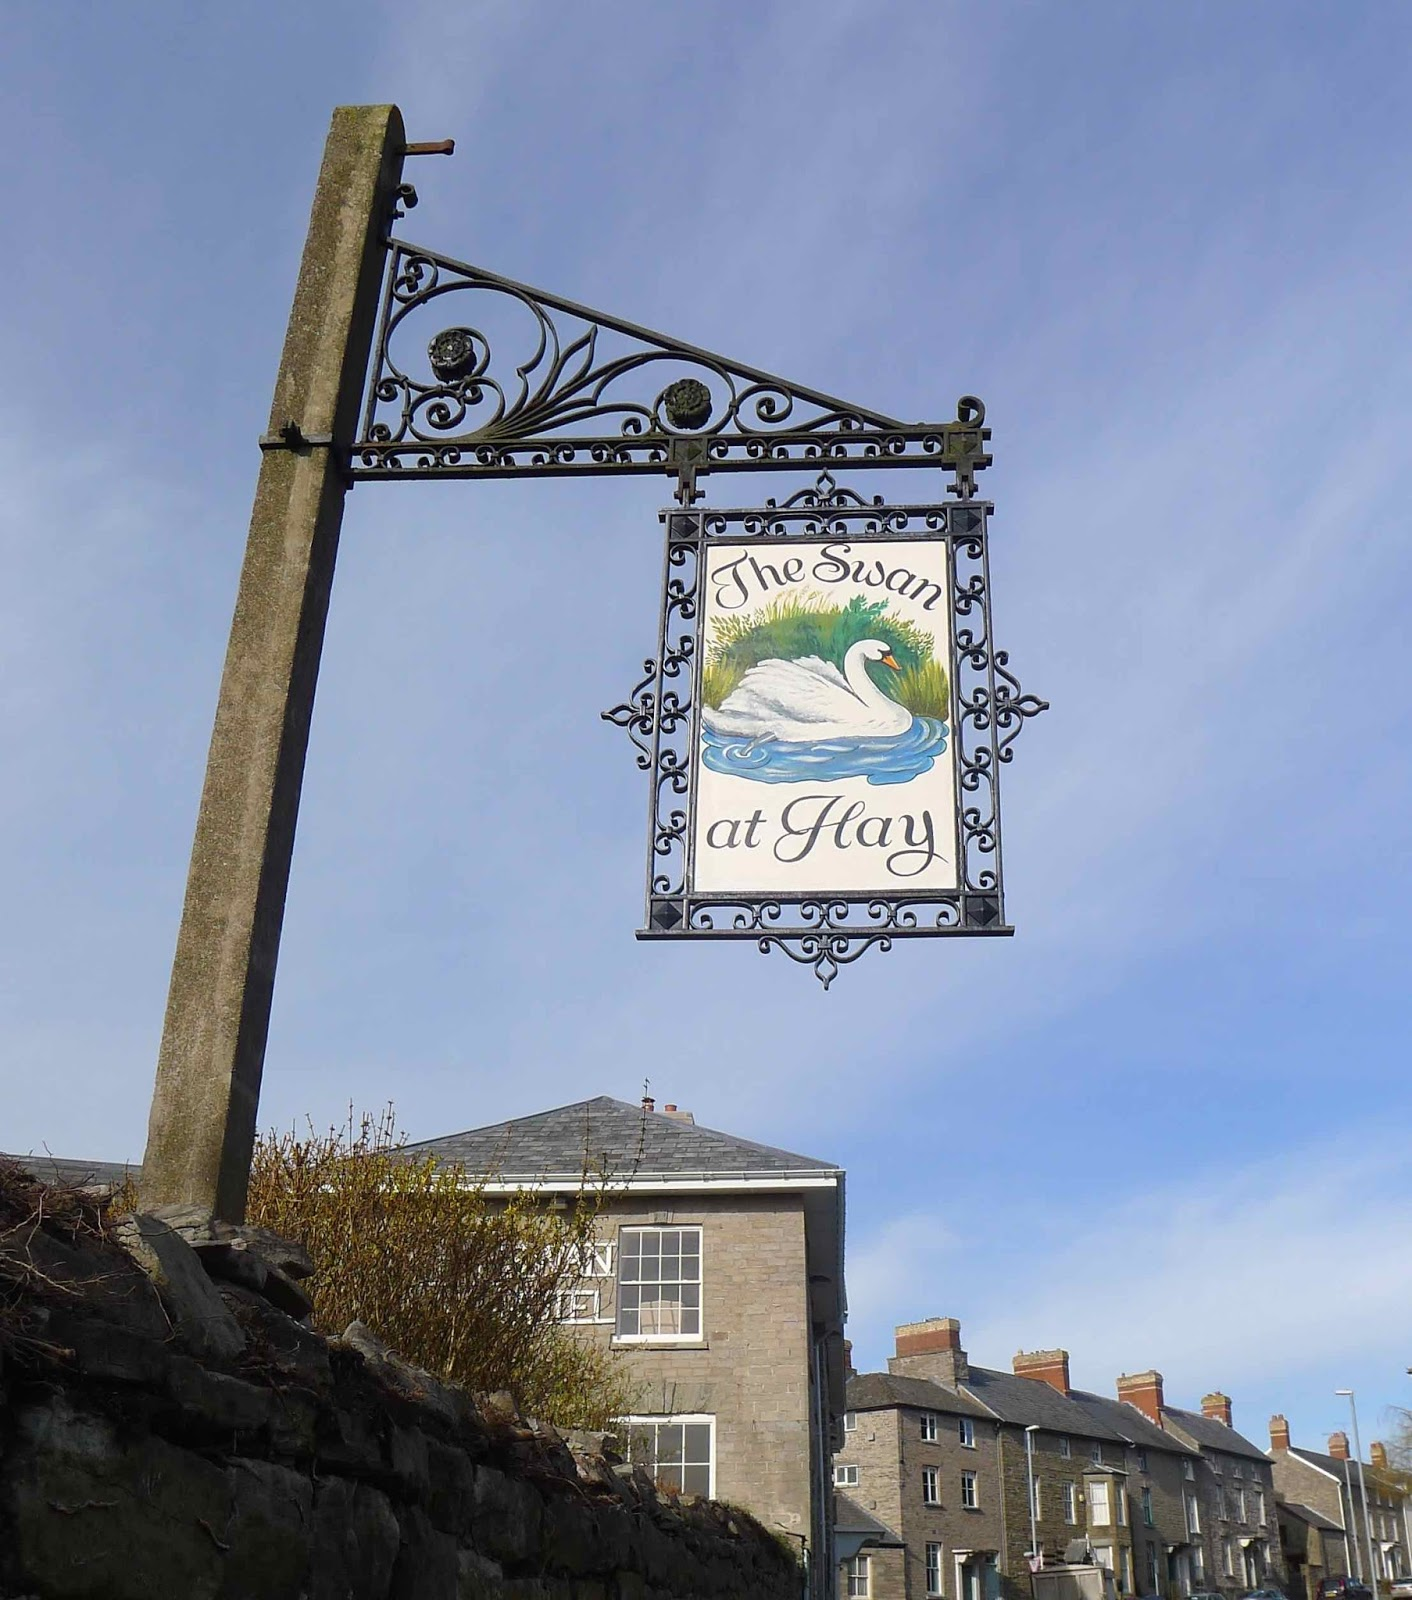 GourmetGorro: The Swan at Hay, Hay-on-Wye hotel and restaurant review